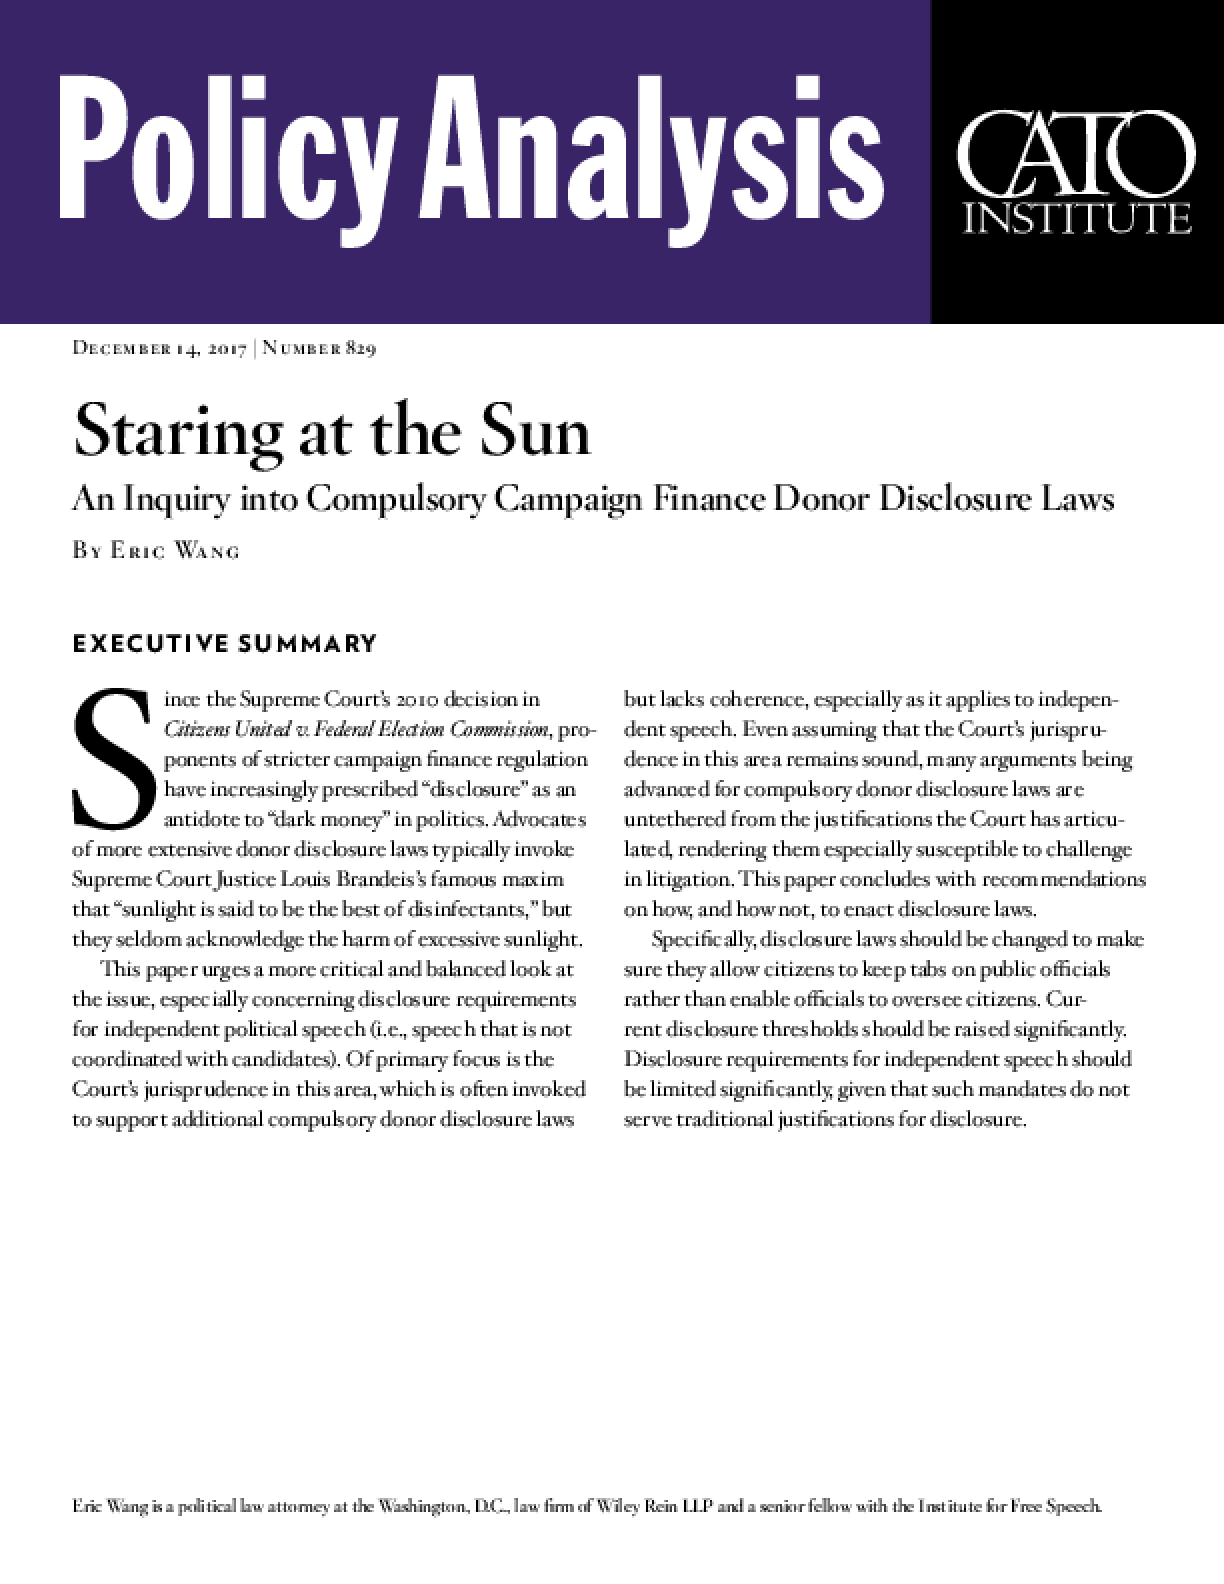 Staring at the Sun: An Inquiry into Compulsory Campaign Finance Donor Disclosure Laws